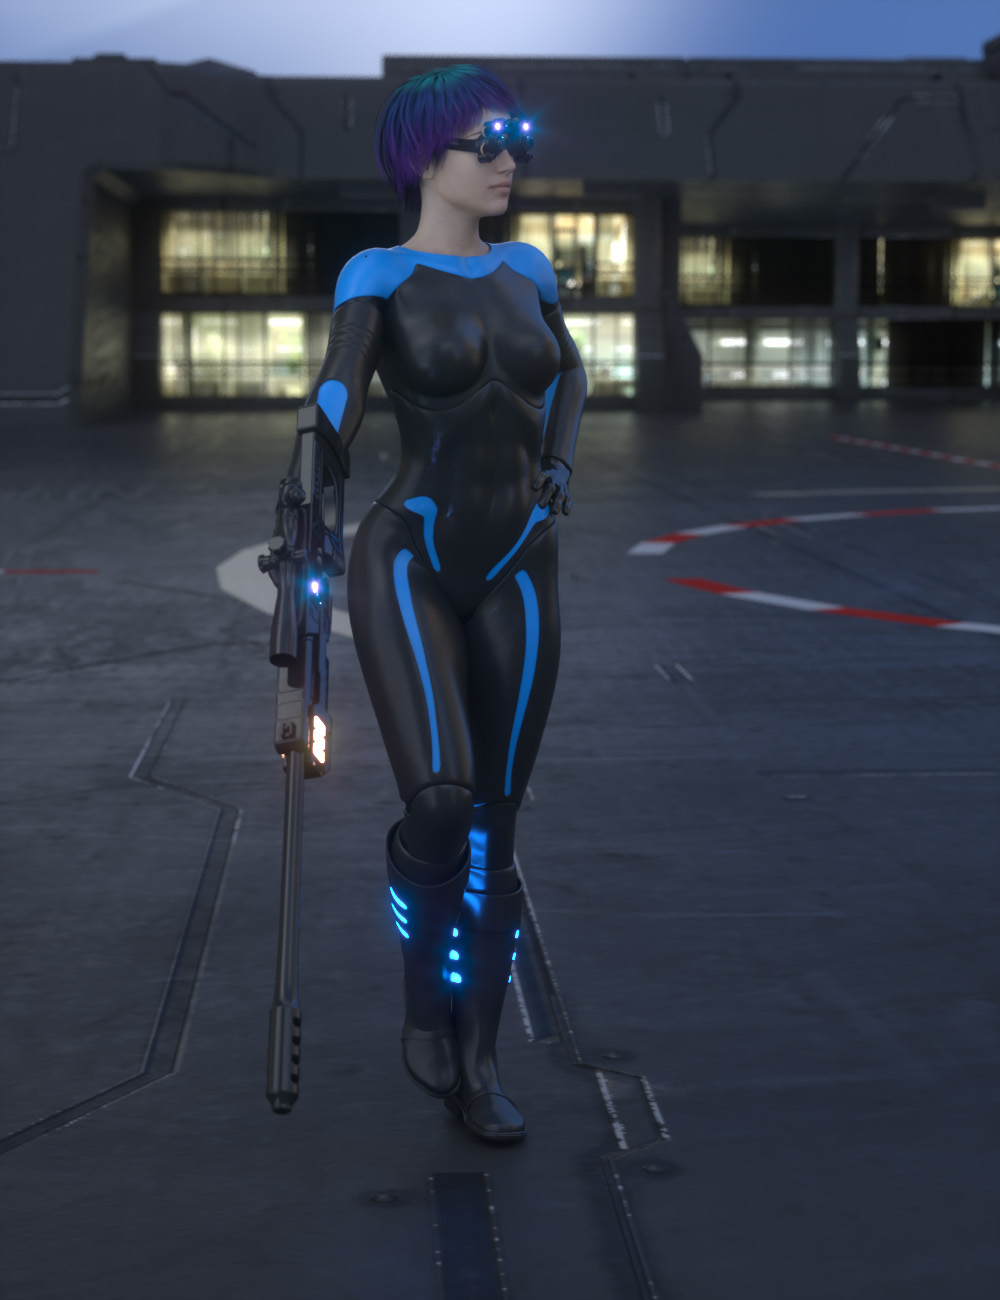 Sci-Fi Sniper Outfit For Genesis 8 Female by: AcharyaPolina, 3D Models by Daz 3D